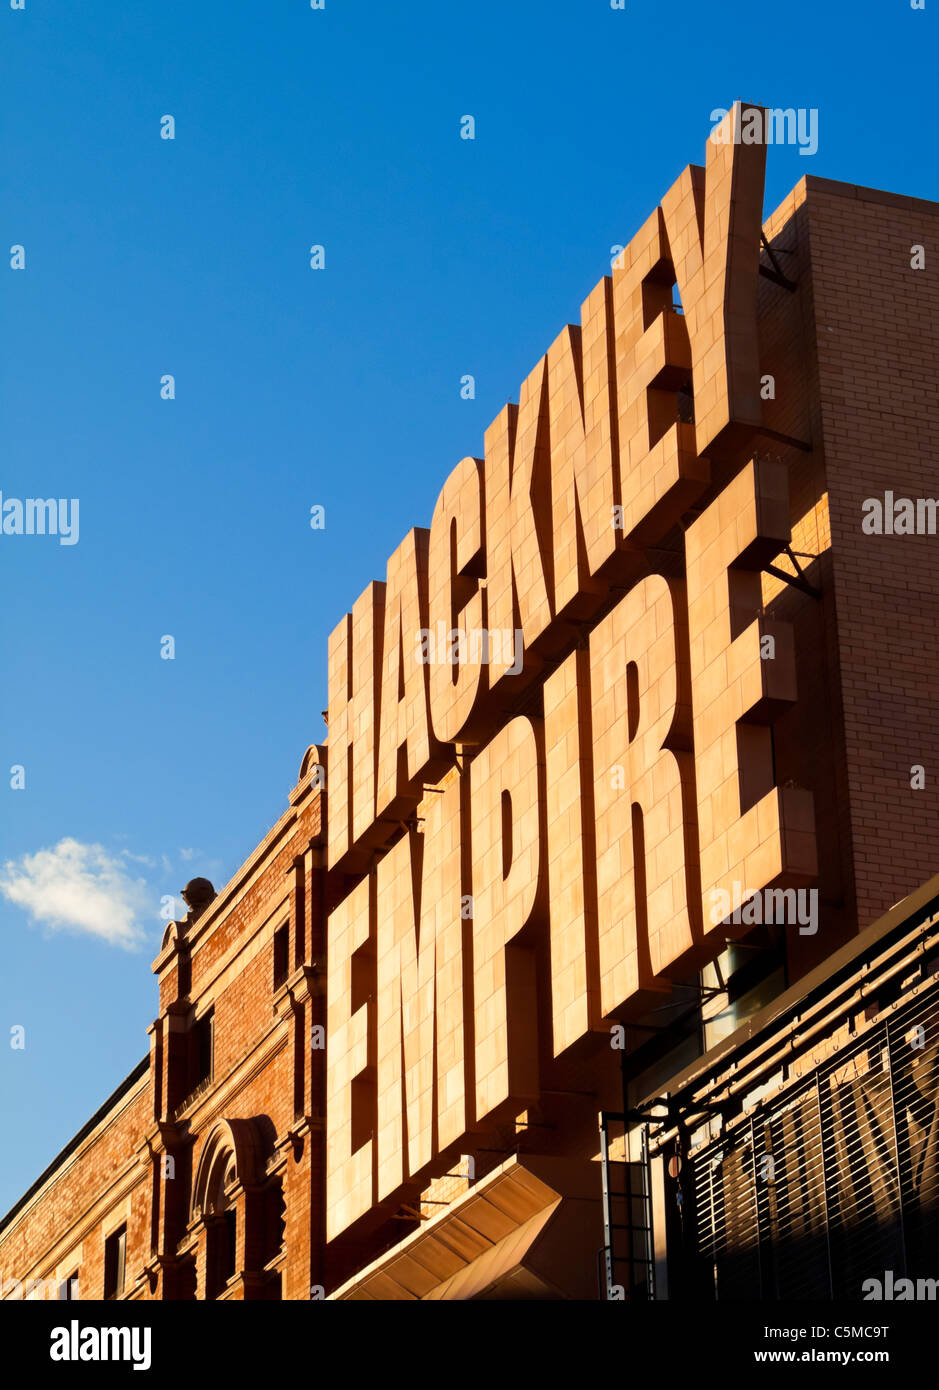 View of the 2004 refurbished part of the Hackney Empire Theatre in East London  UK built in 1901 by architect Frank - Stock Image